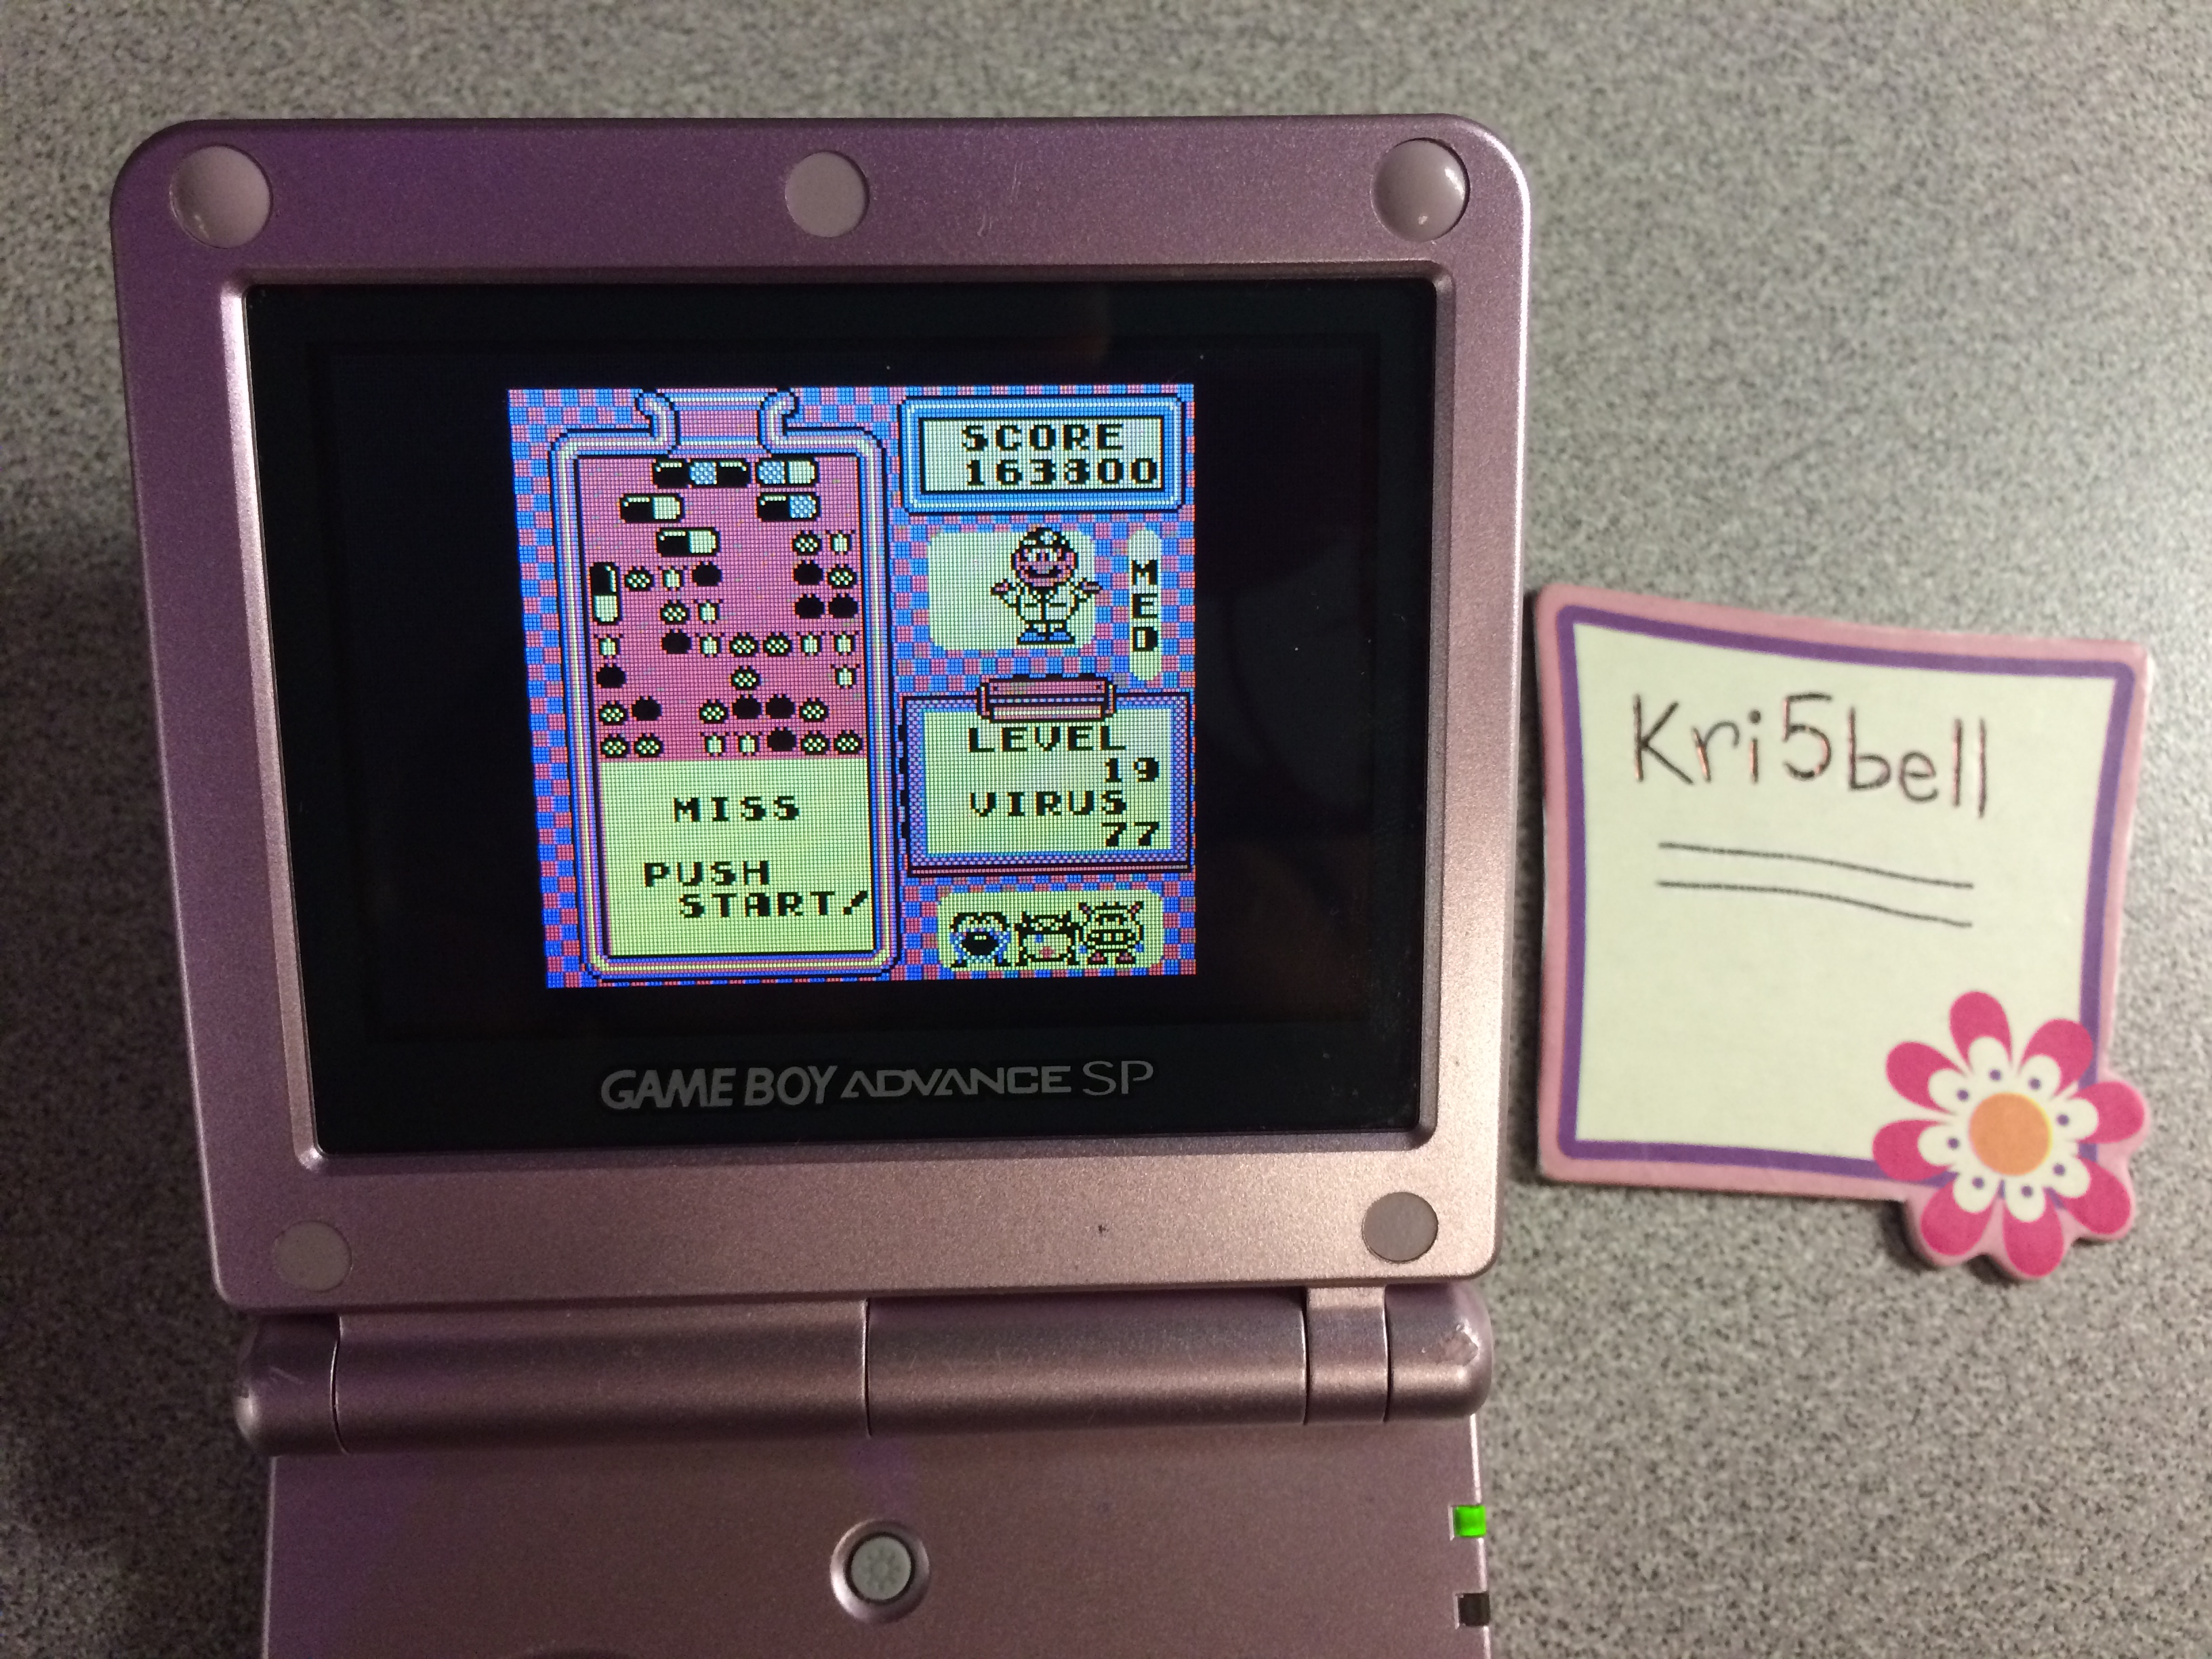 kri5bell: Dr. Mario [Medium] (Game Boy) 163,800 points on 2014-10-28 14:52:58